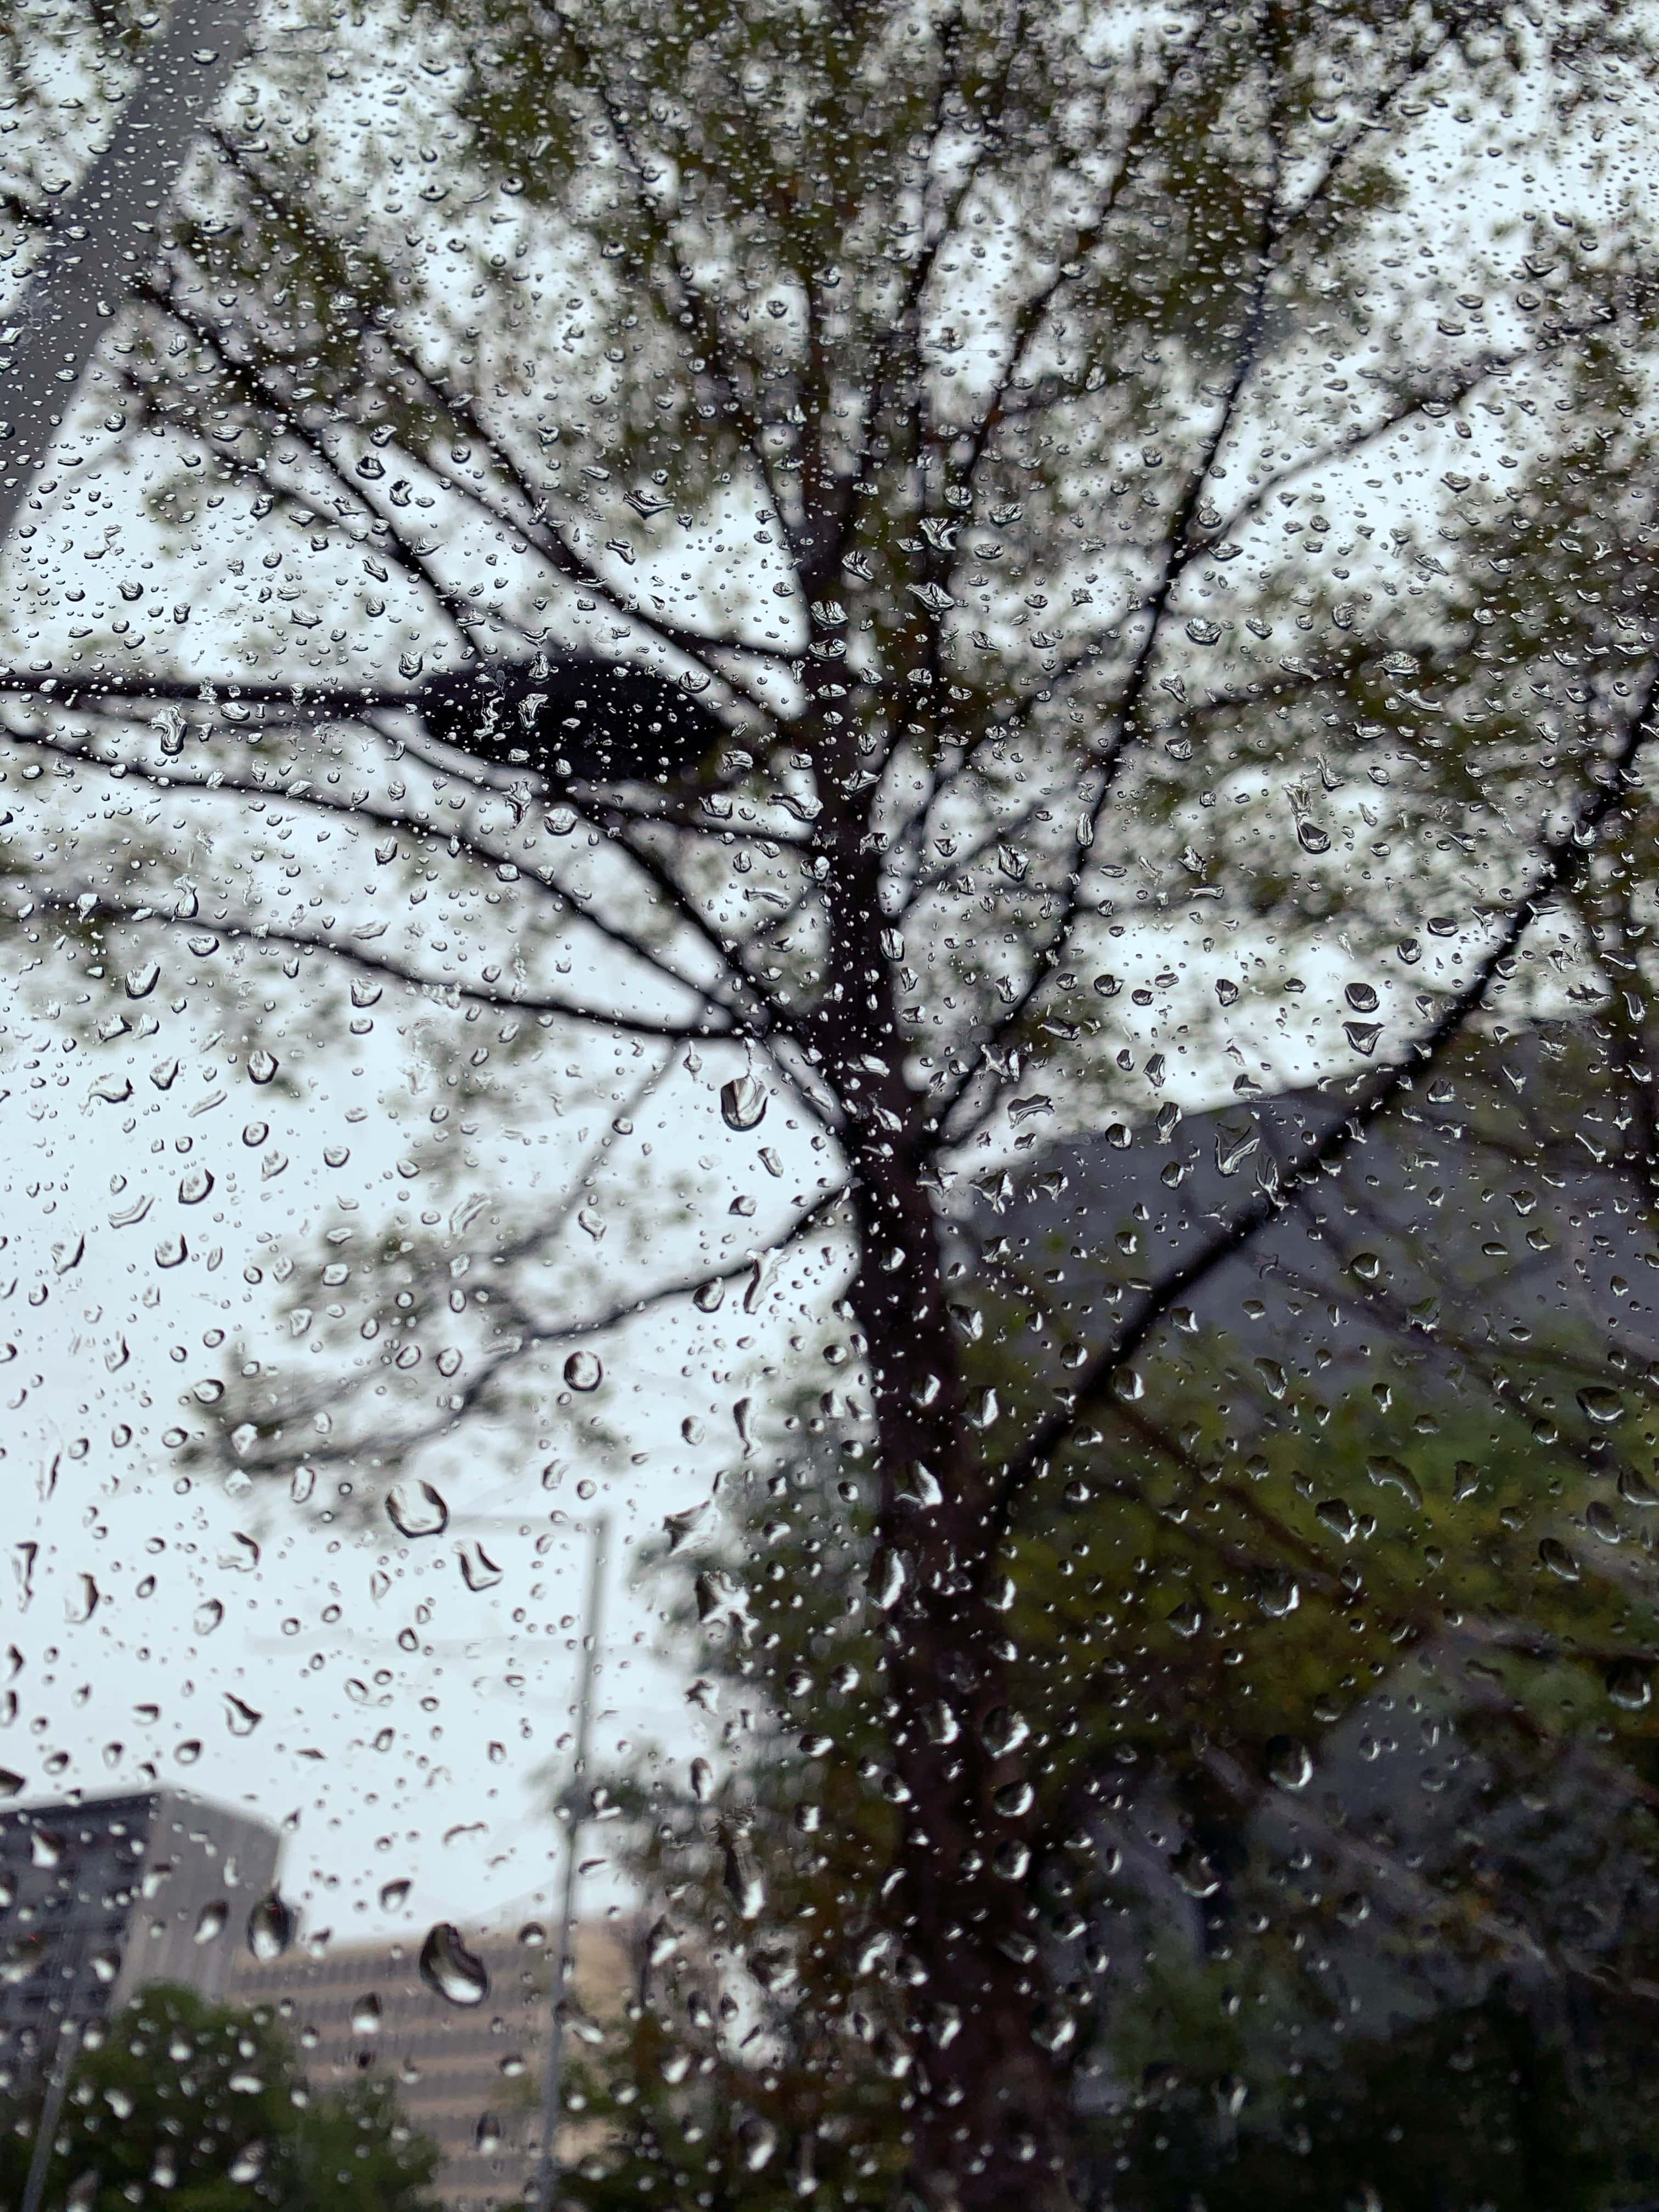 Summertime rains in Canberra